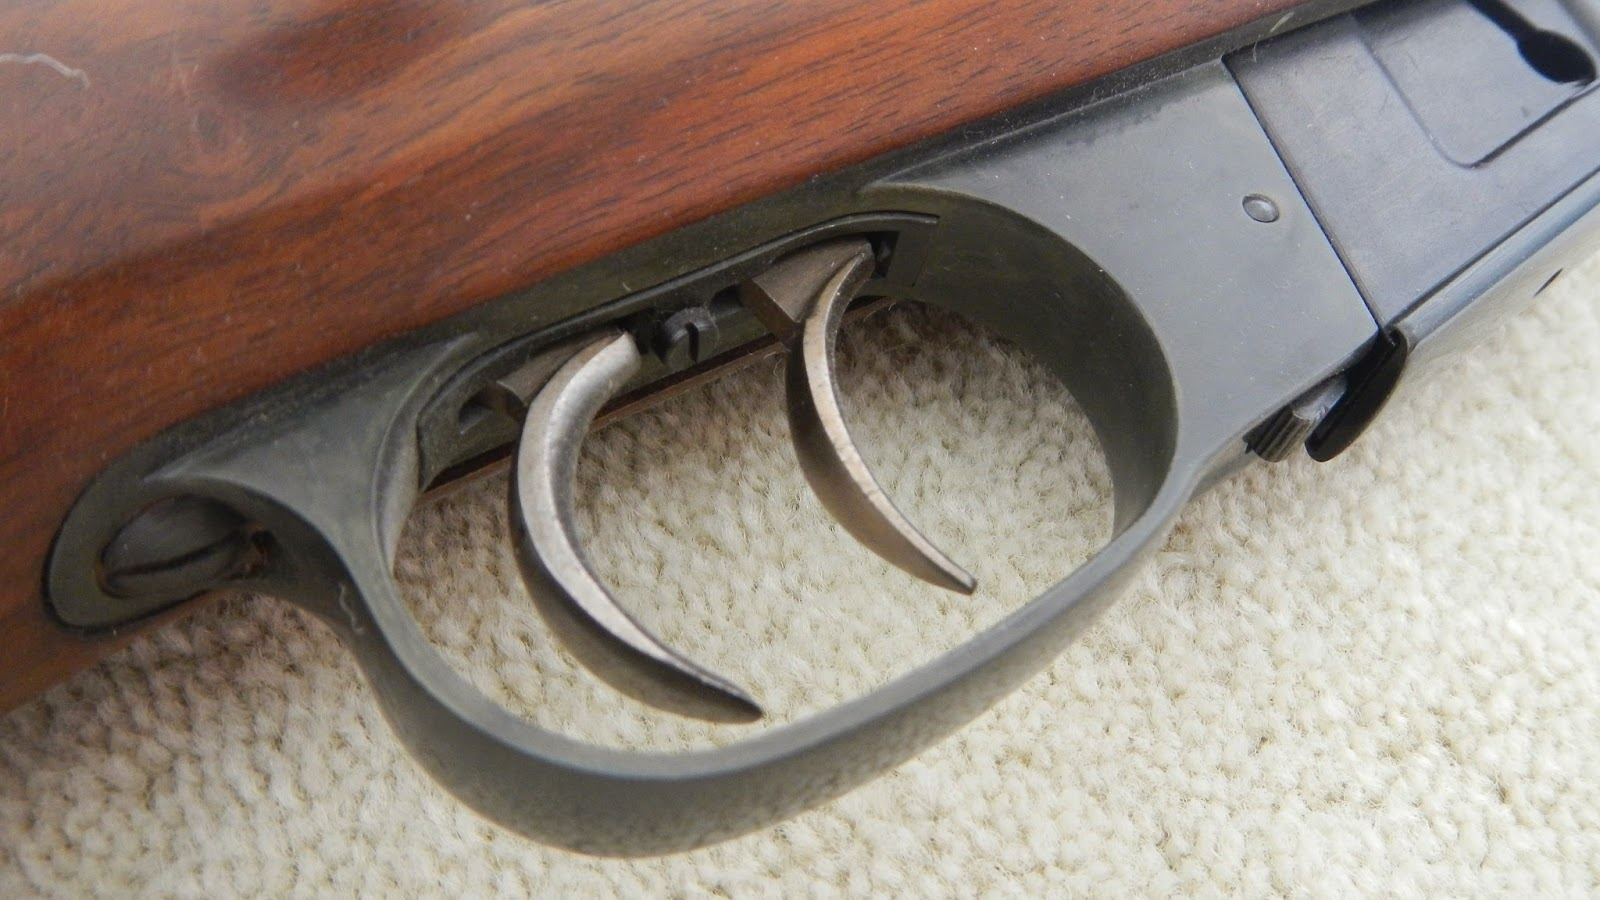 "Double set trigger as commonly found on German and Austrian sporting rifles. The front trigger can be used as a conventional trigger with a normal heavy pull. However, if the rear trigger is pressed first it ""sets"" the front trigger as a light precision trigger. If the trigger needs to be un-set, first apply the safety catch, press and hold the rear trigger, press the front trigger and hold, release the rear trigger, then release the front one. (picture courtesy of The Gourmet Sportsman.)"